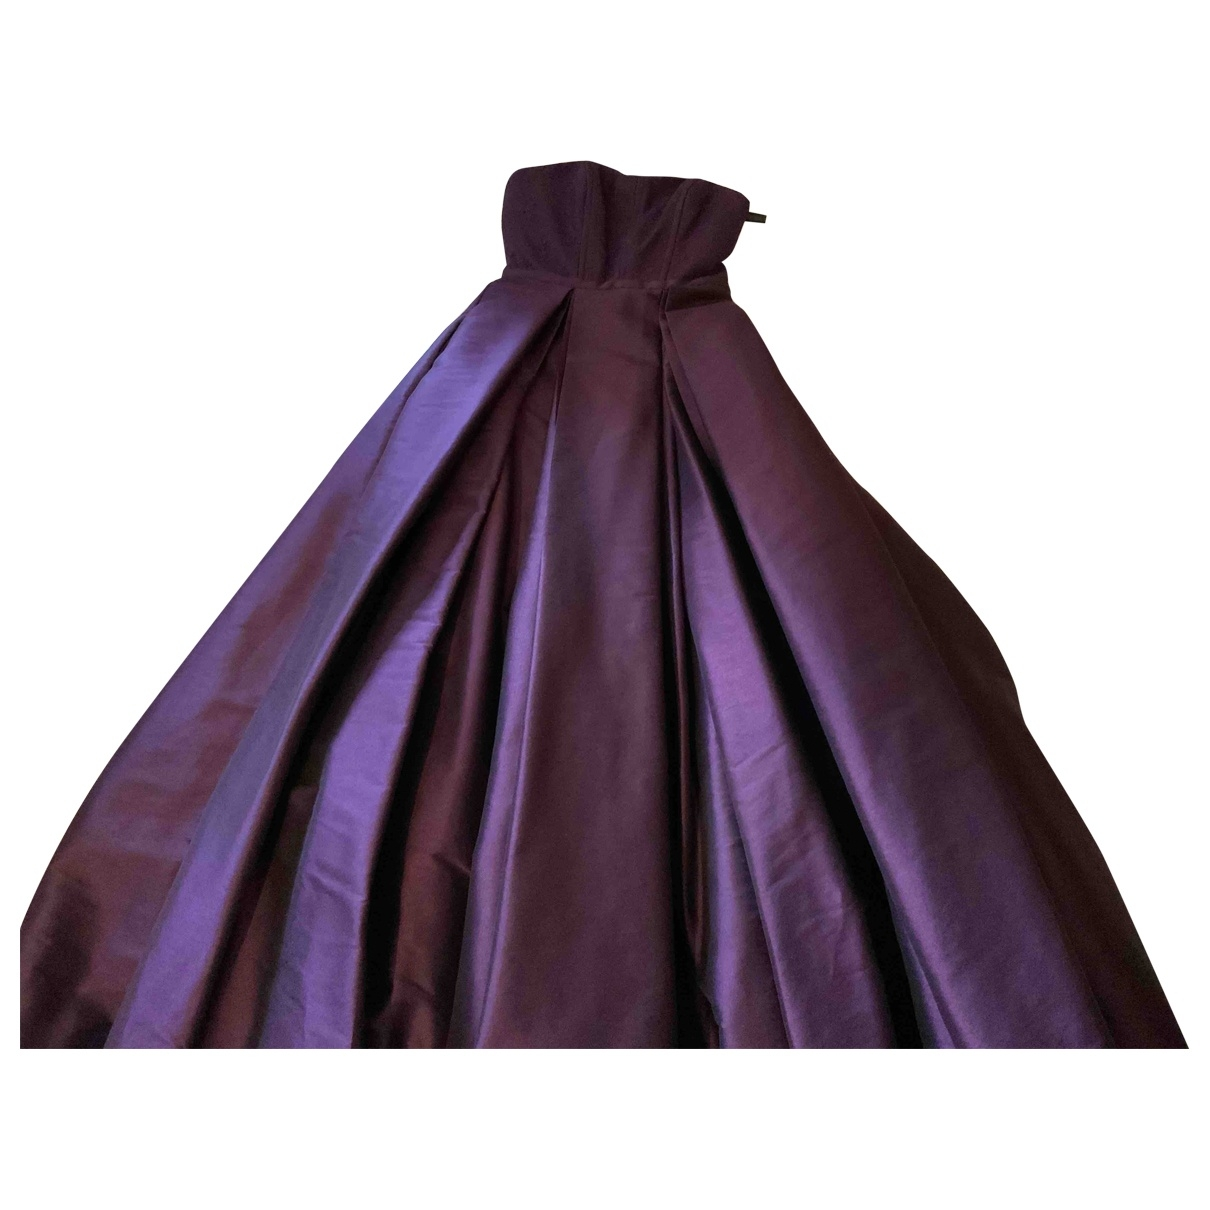 Monique Lhuillier \N Purple dress for Women 1 US